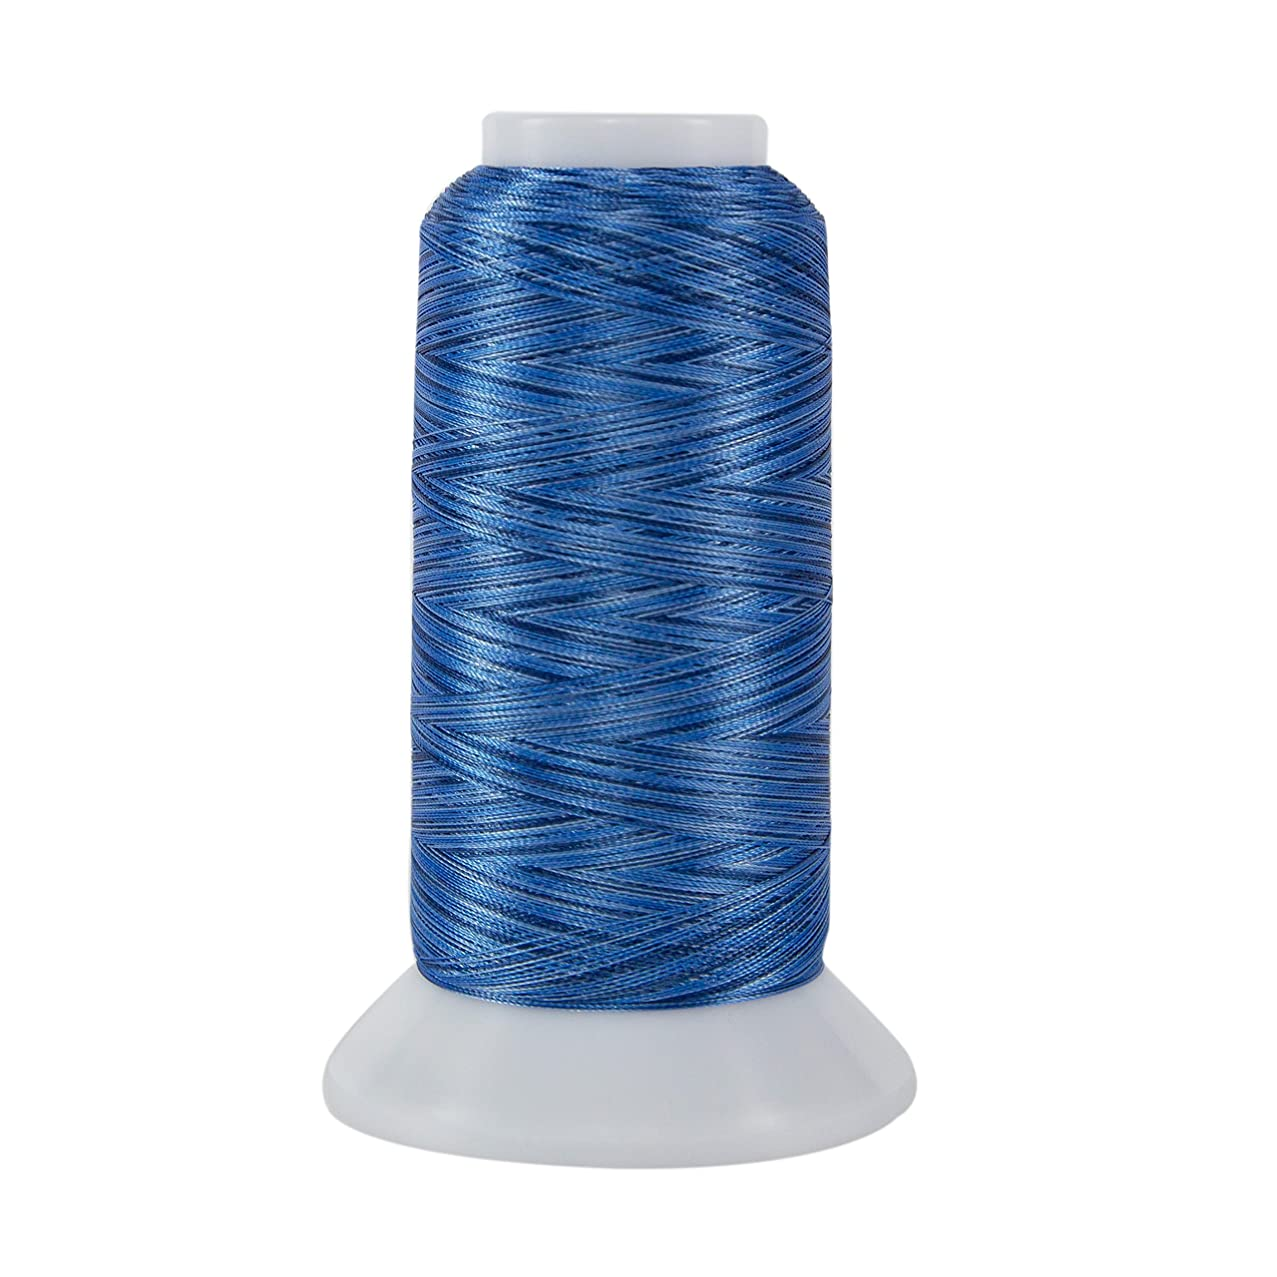 Superior Threads 11002-817 Rainbows Waikiki 40W Polyester Thread, 2000 yd